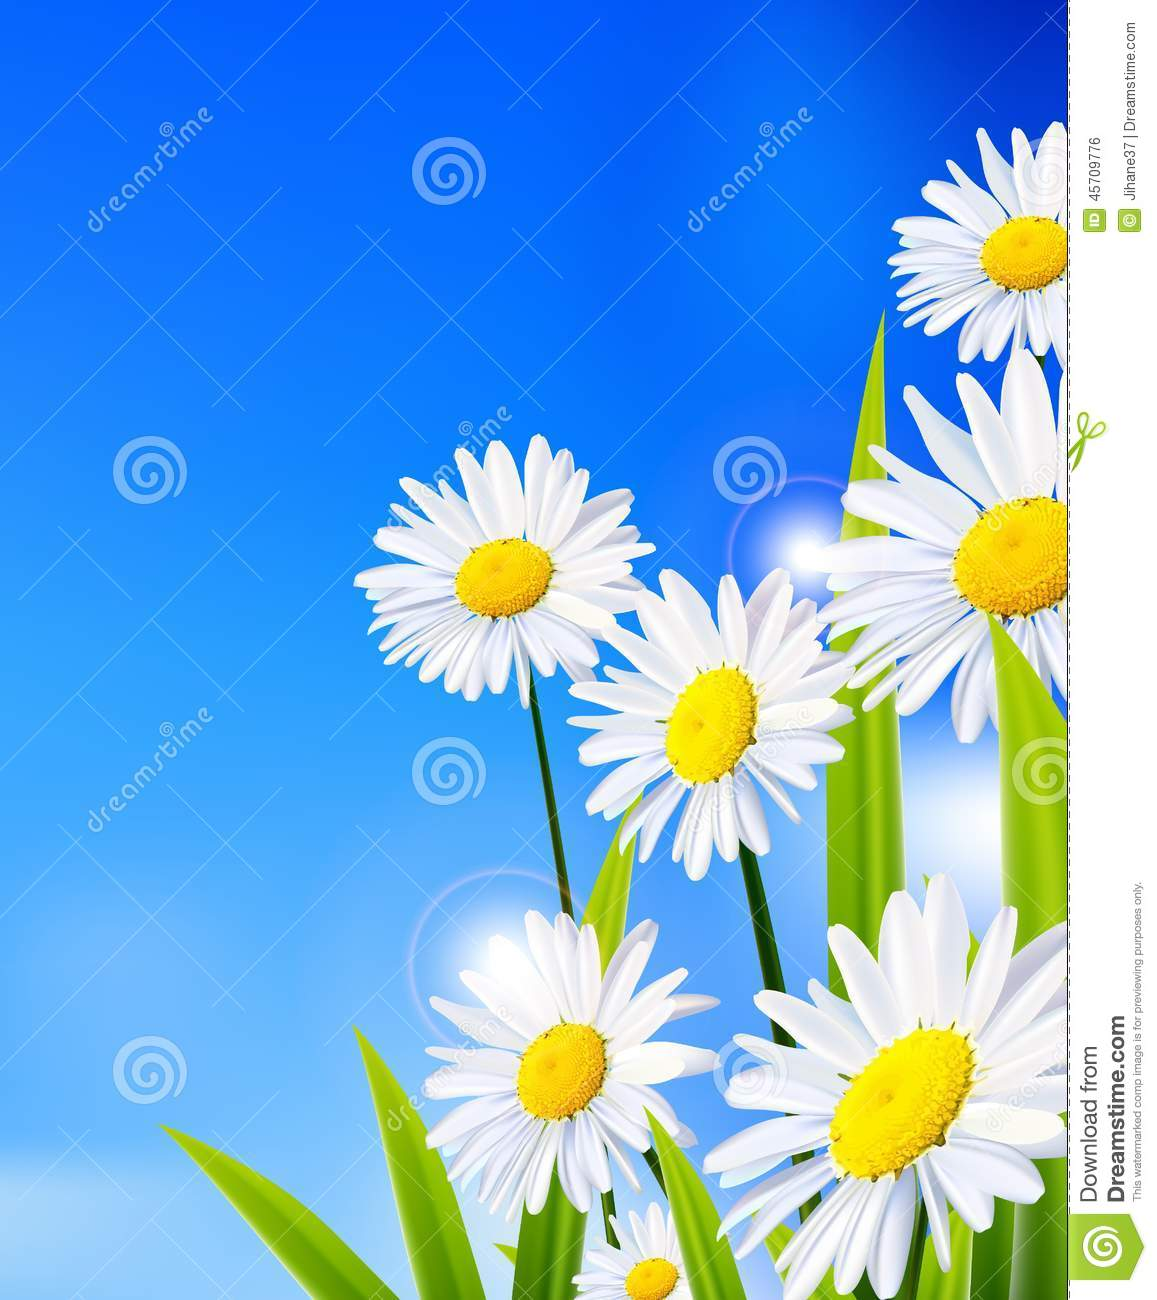 Beauty Daisy Flowers Background For You Design Stock Illustration